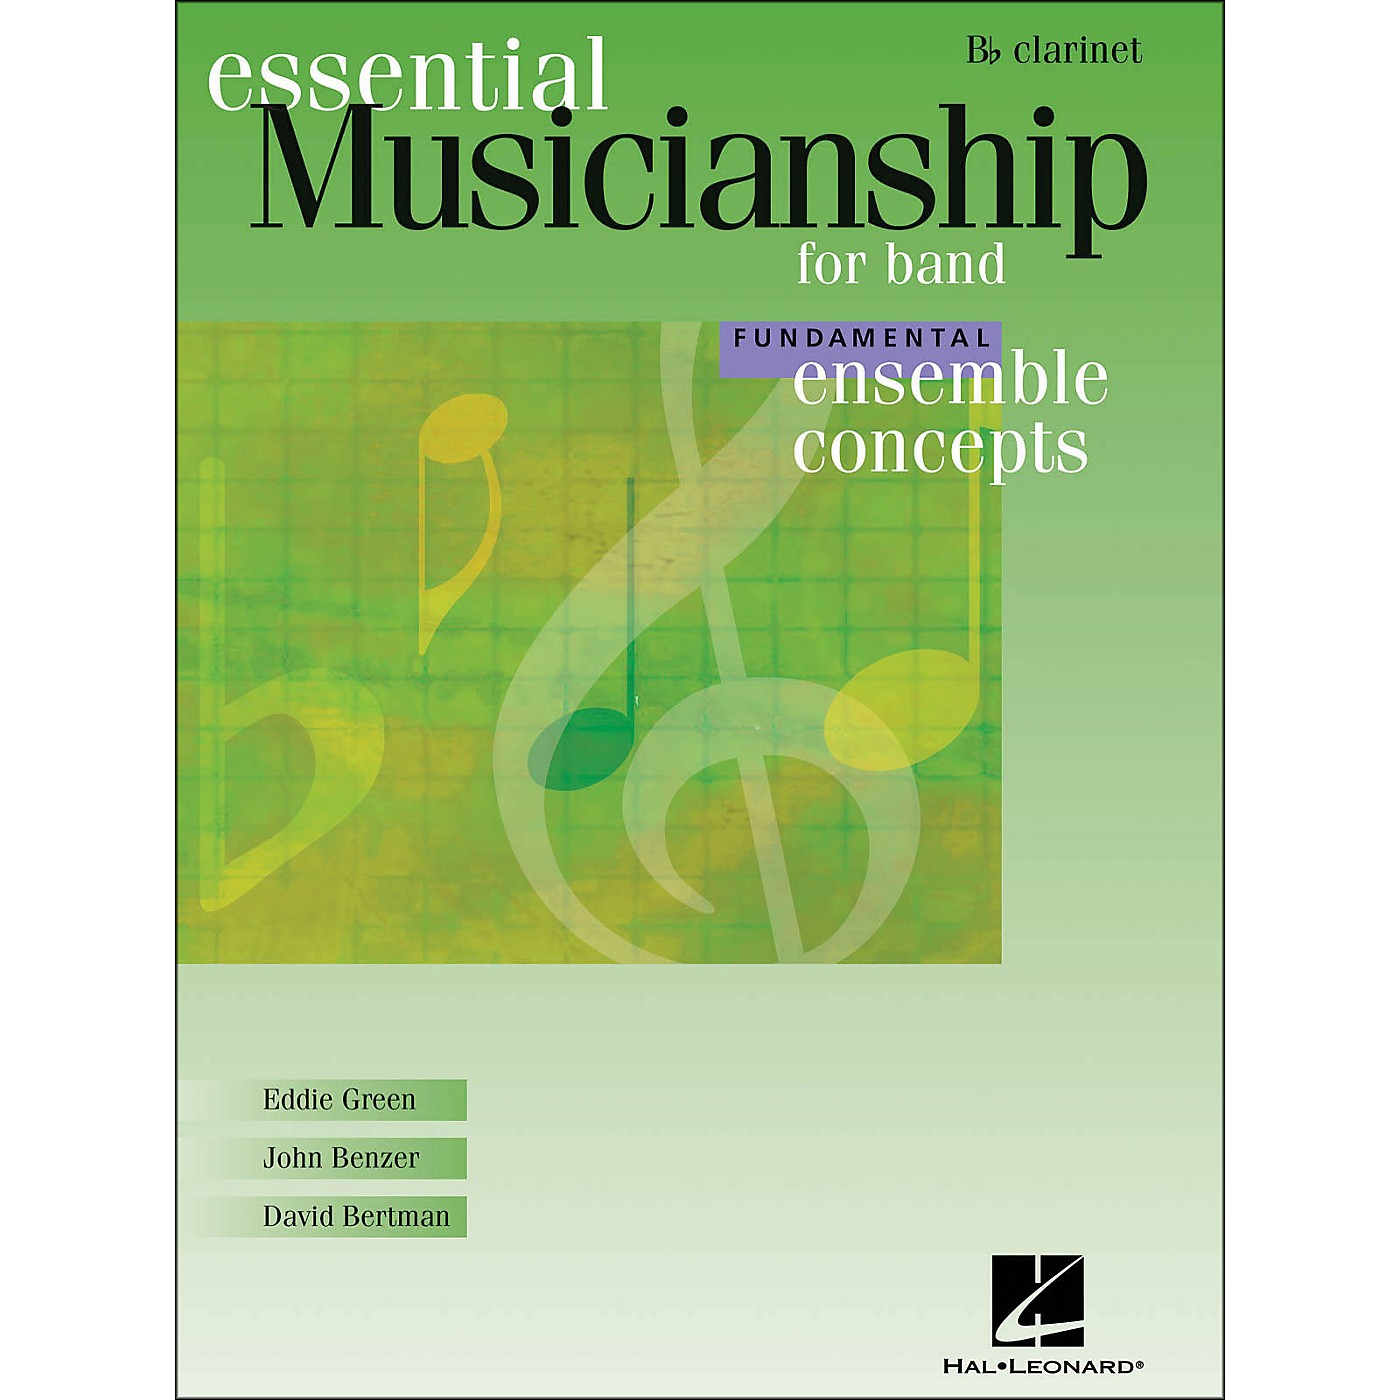 Hal Leonard Ensemble Concepts for Band - Fundamental Level Clarinet thumbnail